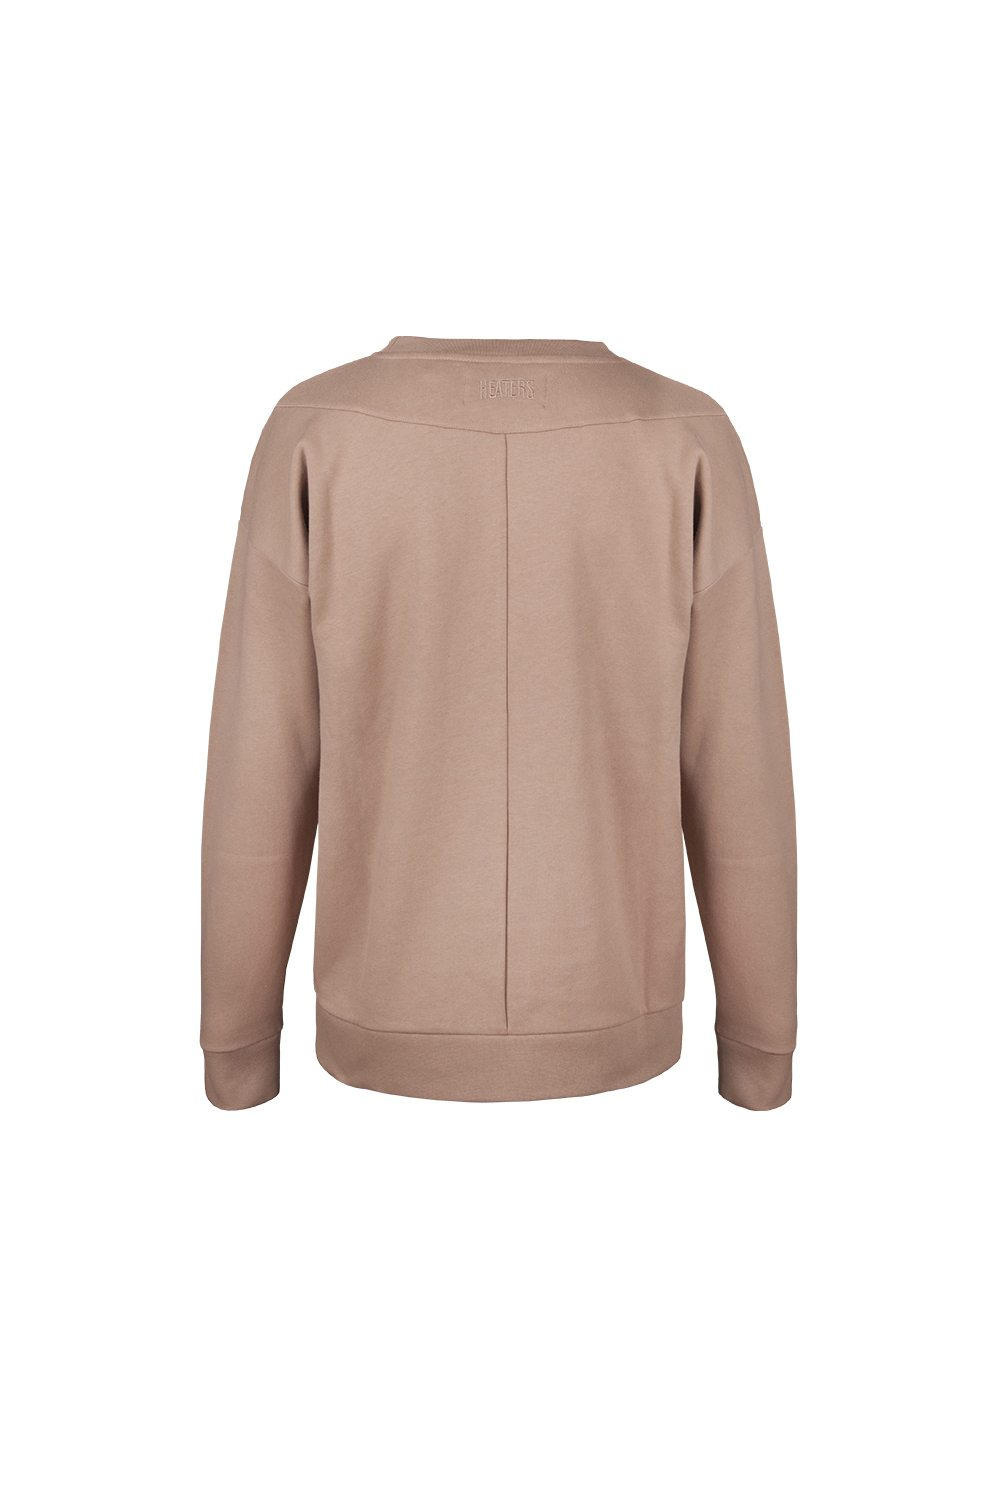 DROPPED SWEATER TAUPE